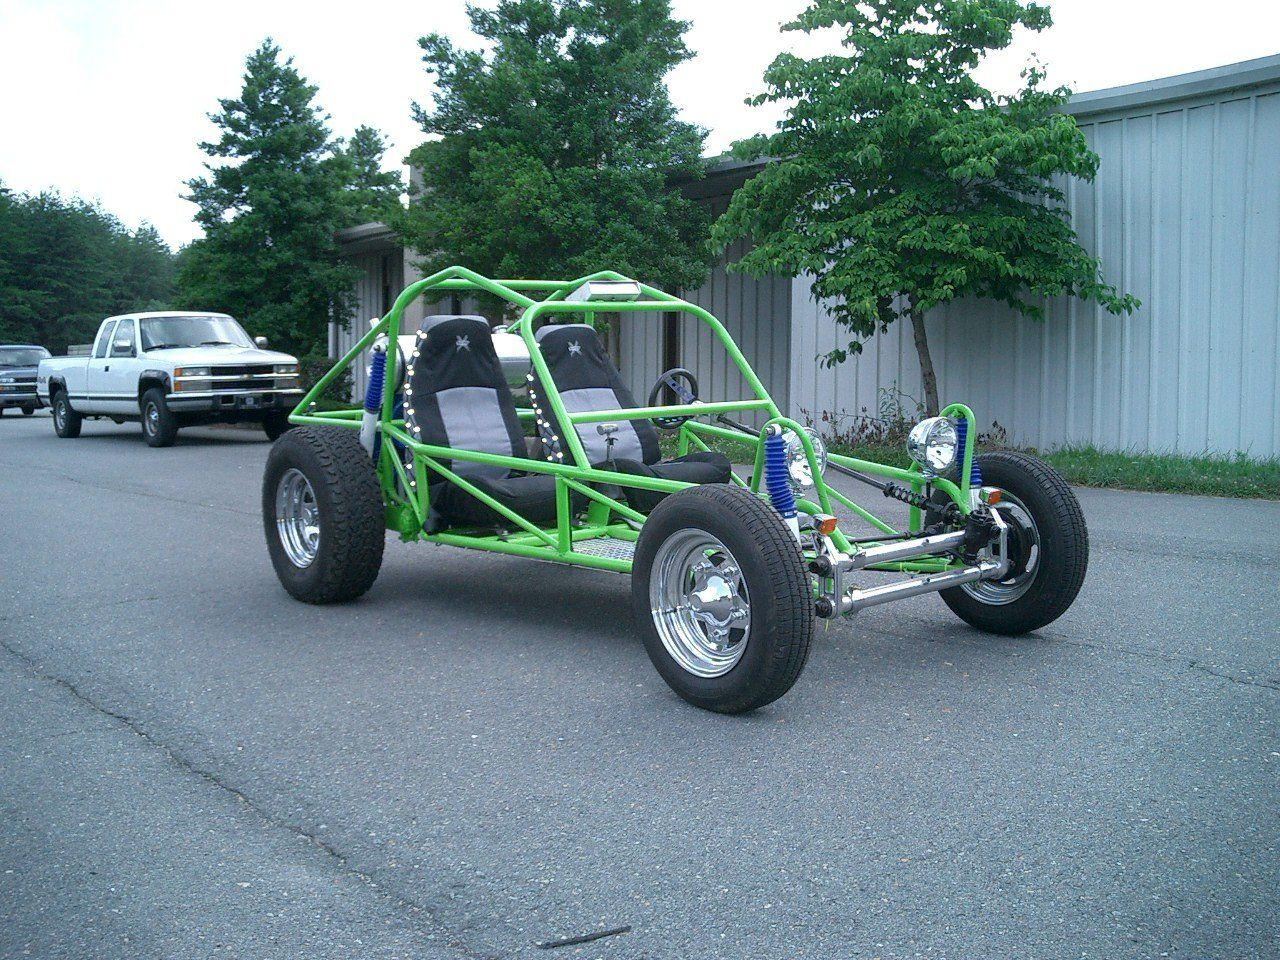 My old VW Rail Dune Buggy